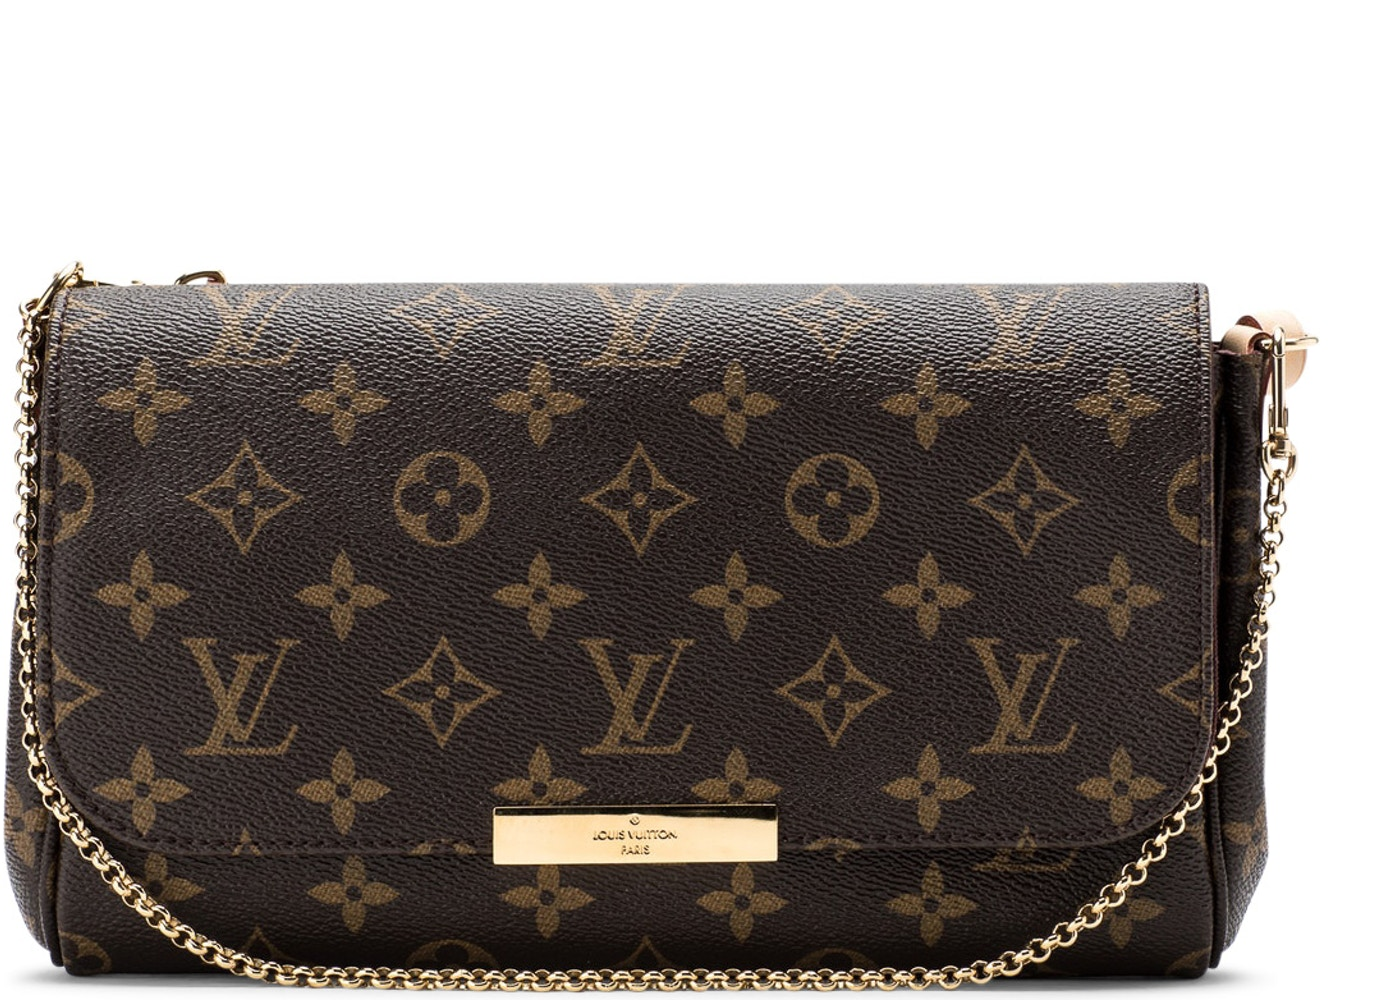 5f6149dbd5e0 Louis Vuitton Favorite Monogram MM Brown. Monogram MM Brown